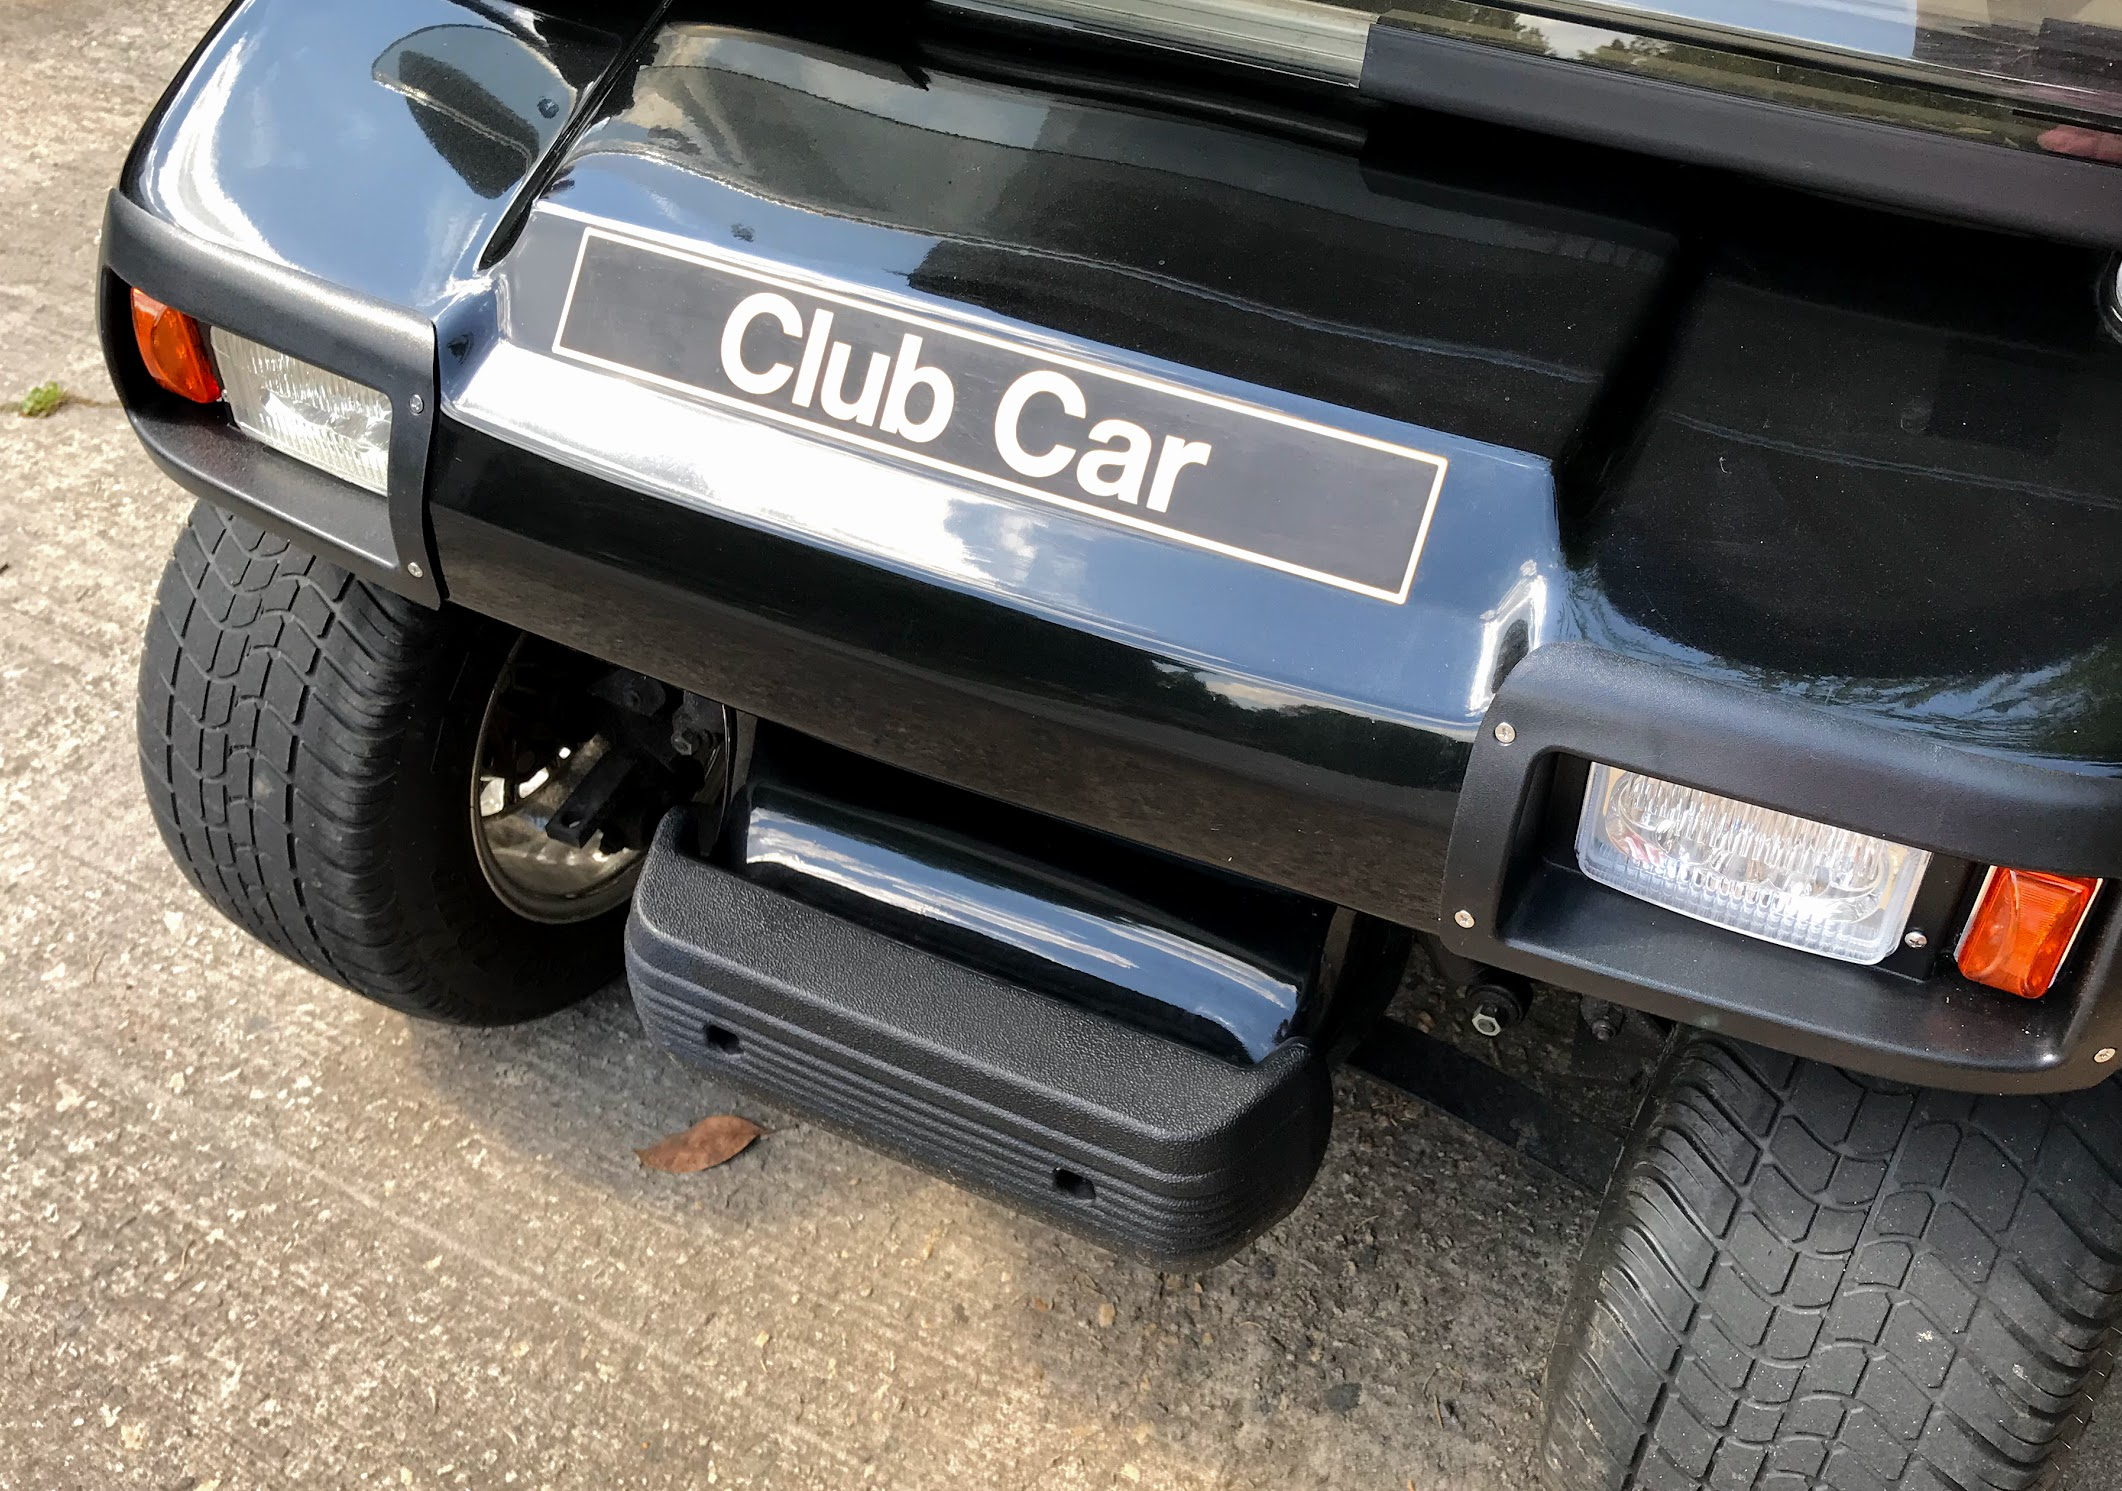 Club car golf cart parts